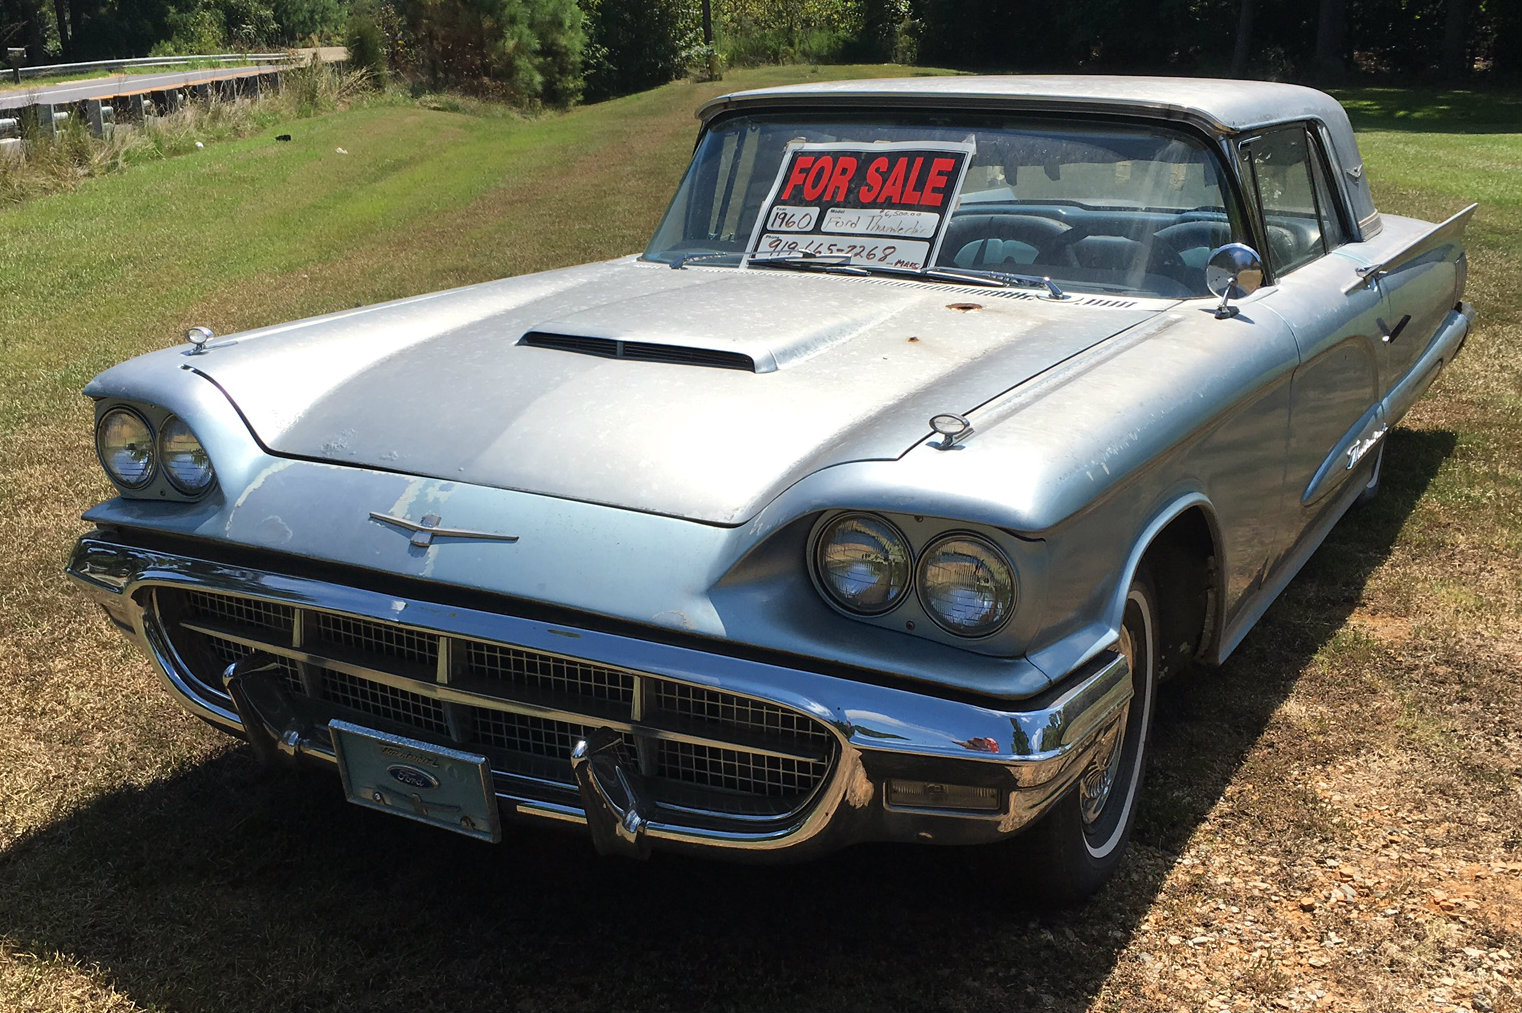 My Ford Credit >> Roadside Find: 1960 Ford Thunderbird